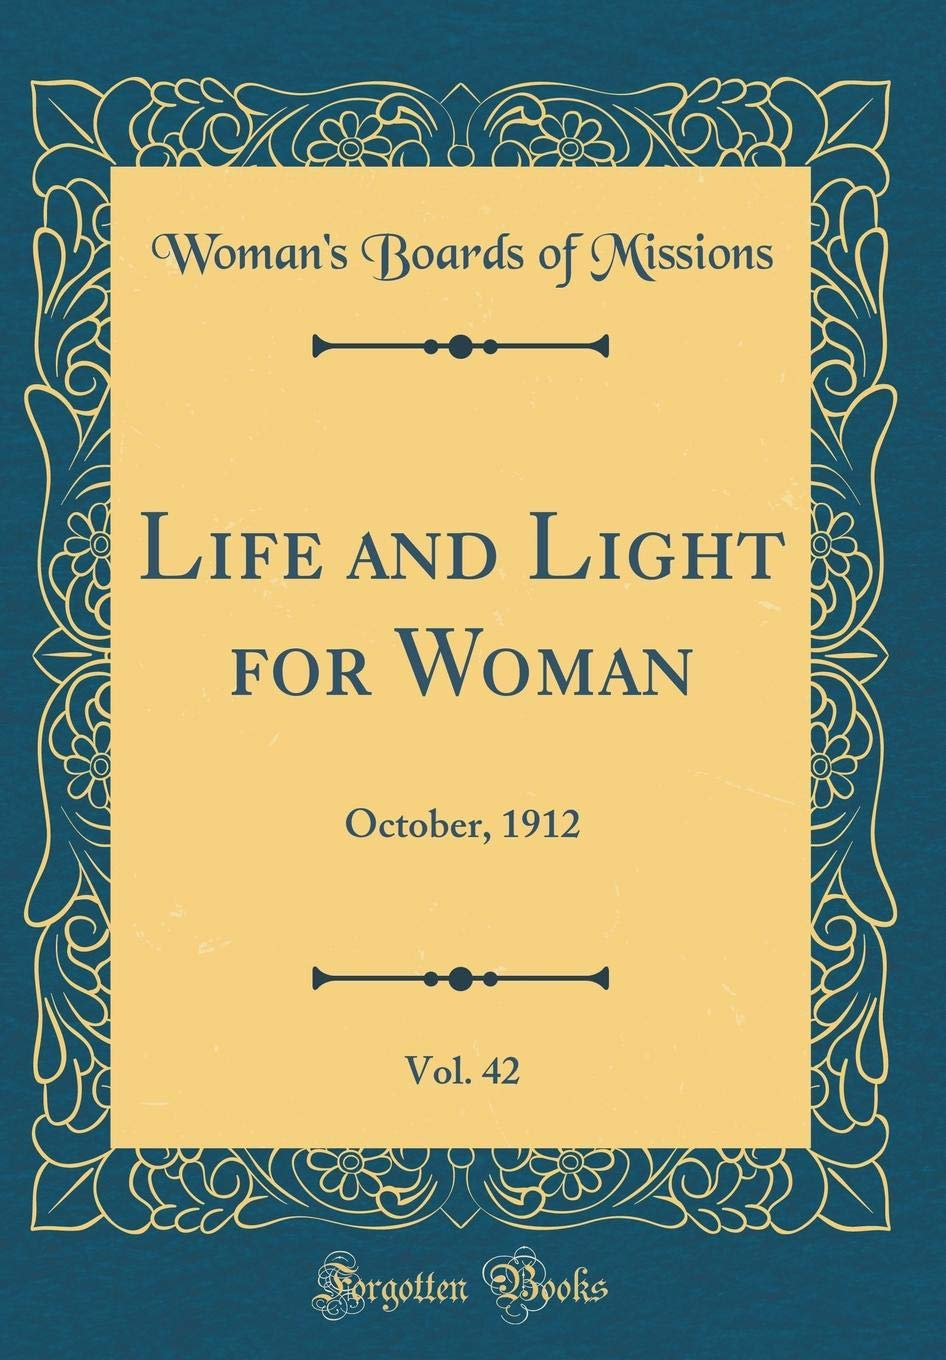 Life and Light for Woman, Vol. 42: October, 1912 (Classic Reprint) PDF